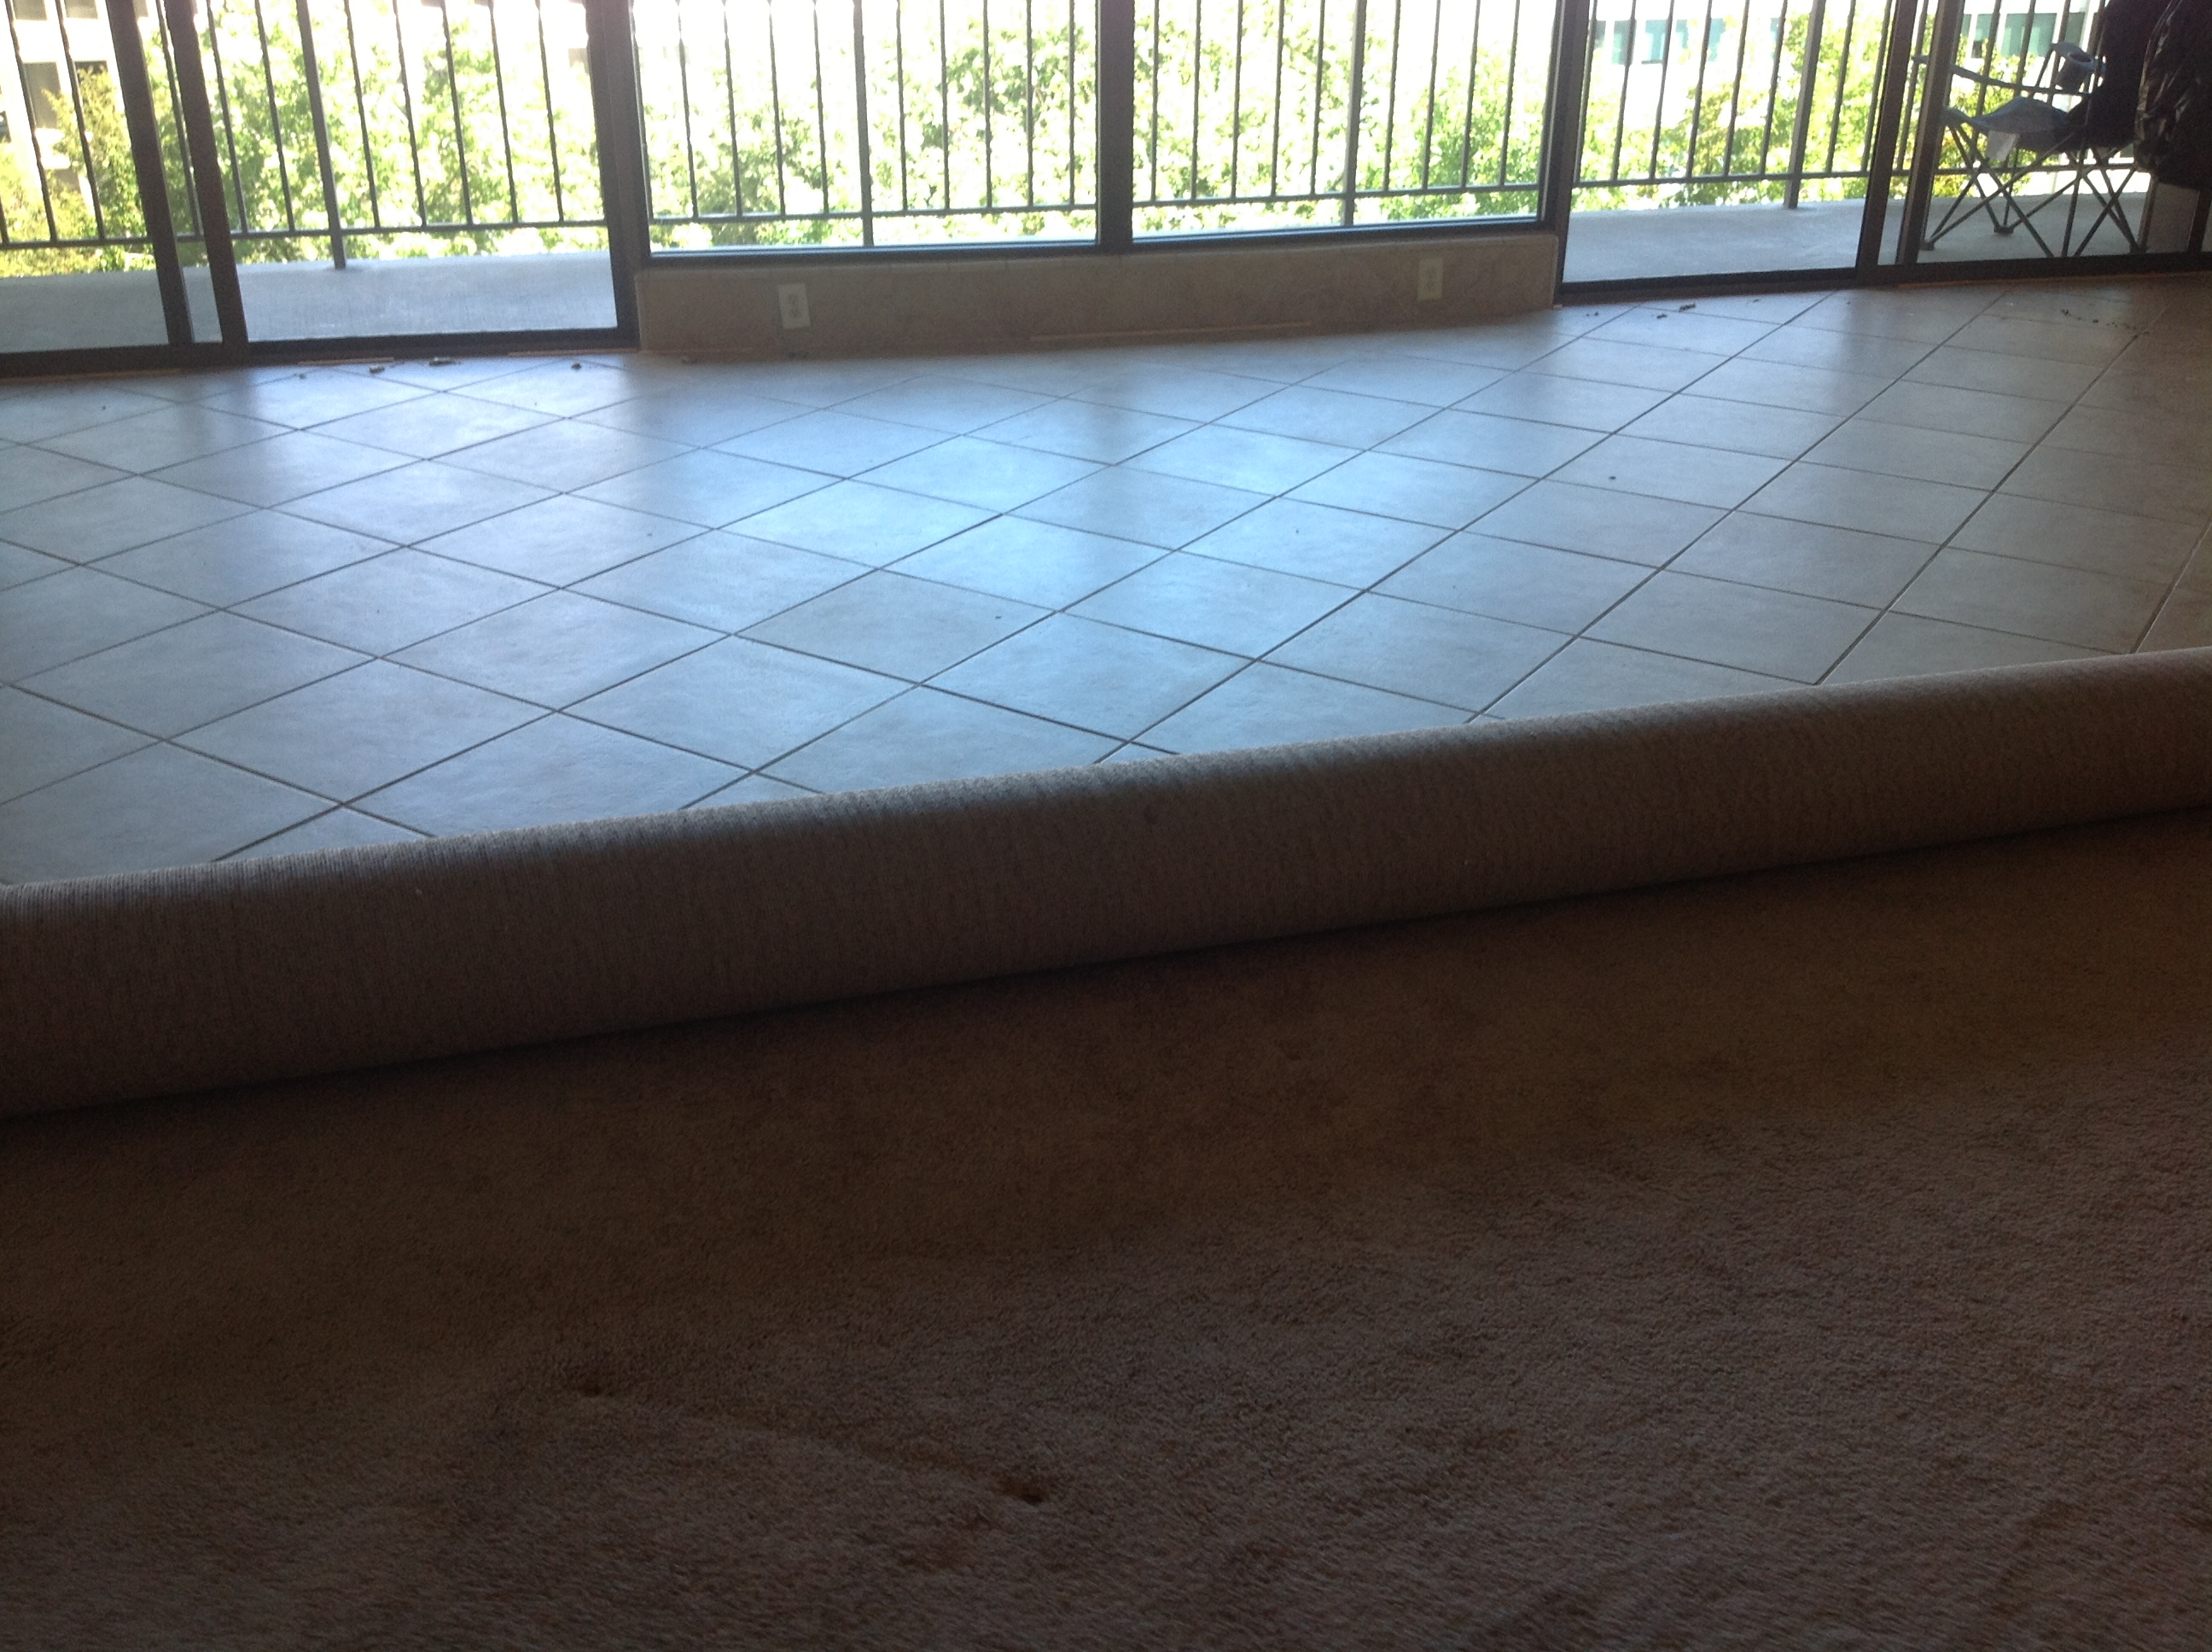 Porcelain Tile Carpet Glue Removal | California Tile Restoration ...